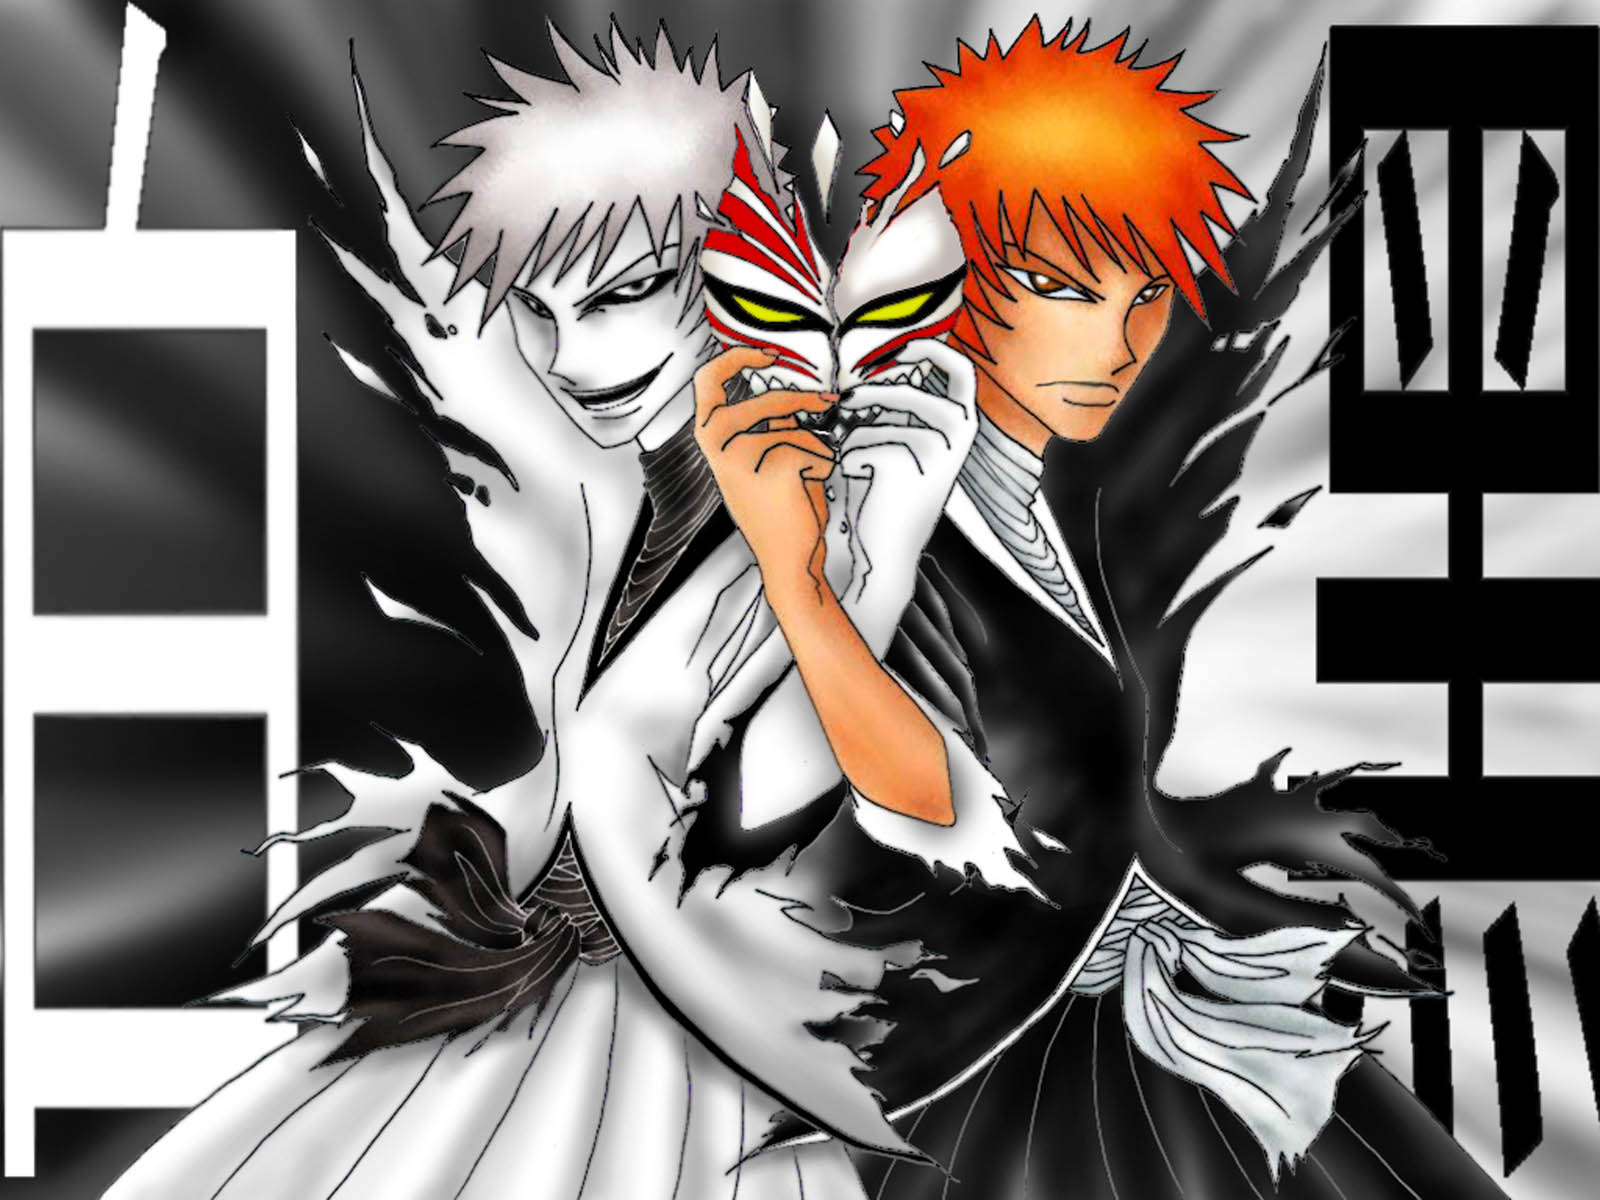 Anime <b>Wallpaper</b>: <b>Bleach</b> Widescreen <b>Wallpapers</b> Desktop Background ...